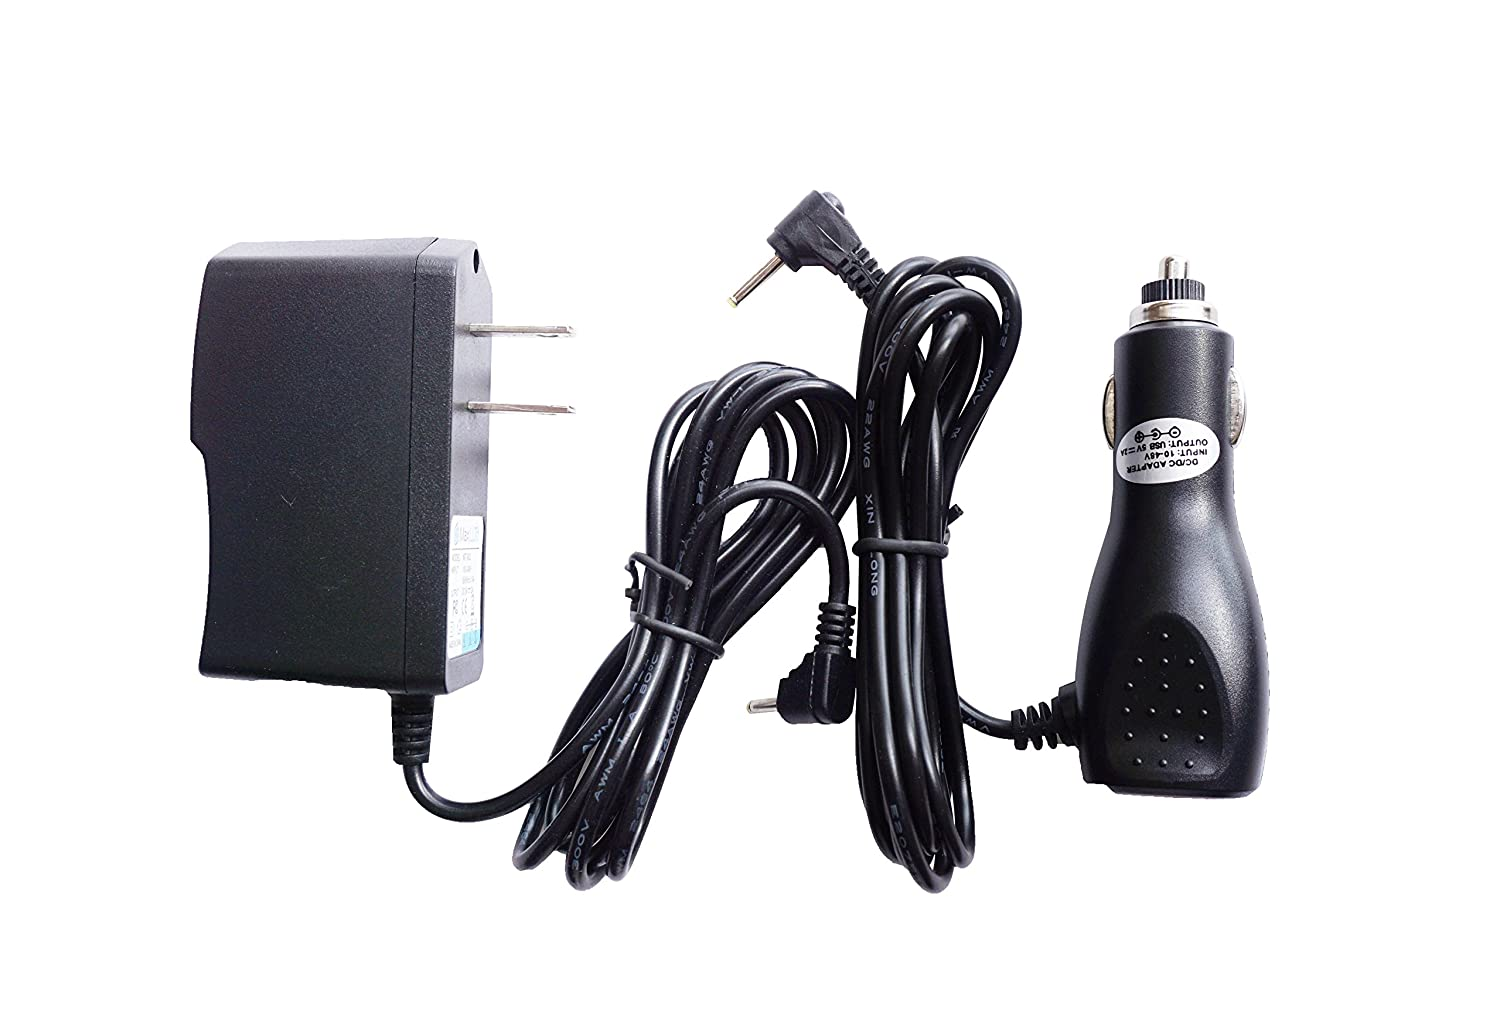 Amazon.com: MaxLLTo™ Car + AC/DC Power ADAPTER For RCA DHT235A W DHT235AR DHT235C DHT235D Portable TV: Home Audio & Theater